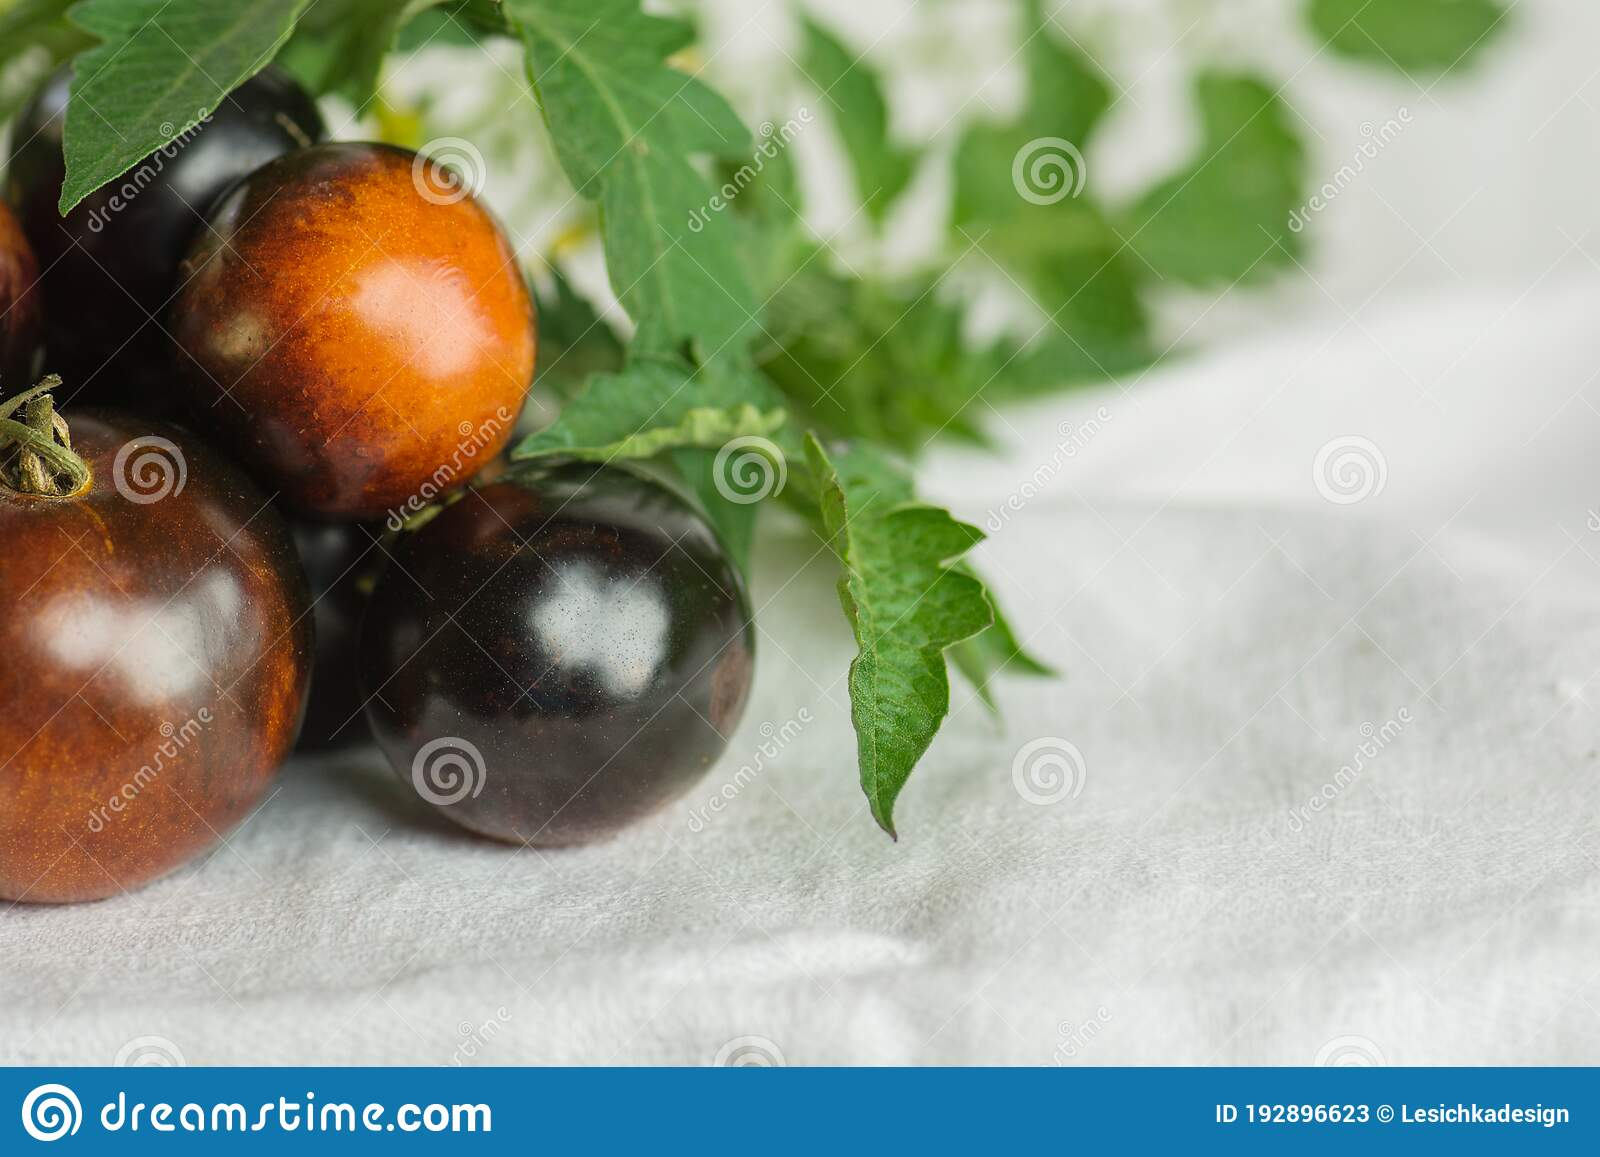 Tomato Bosque Blue Photos Free Royalty Free Stock Photos From Dreamstime